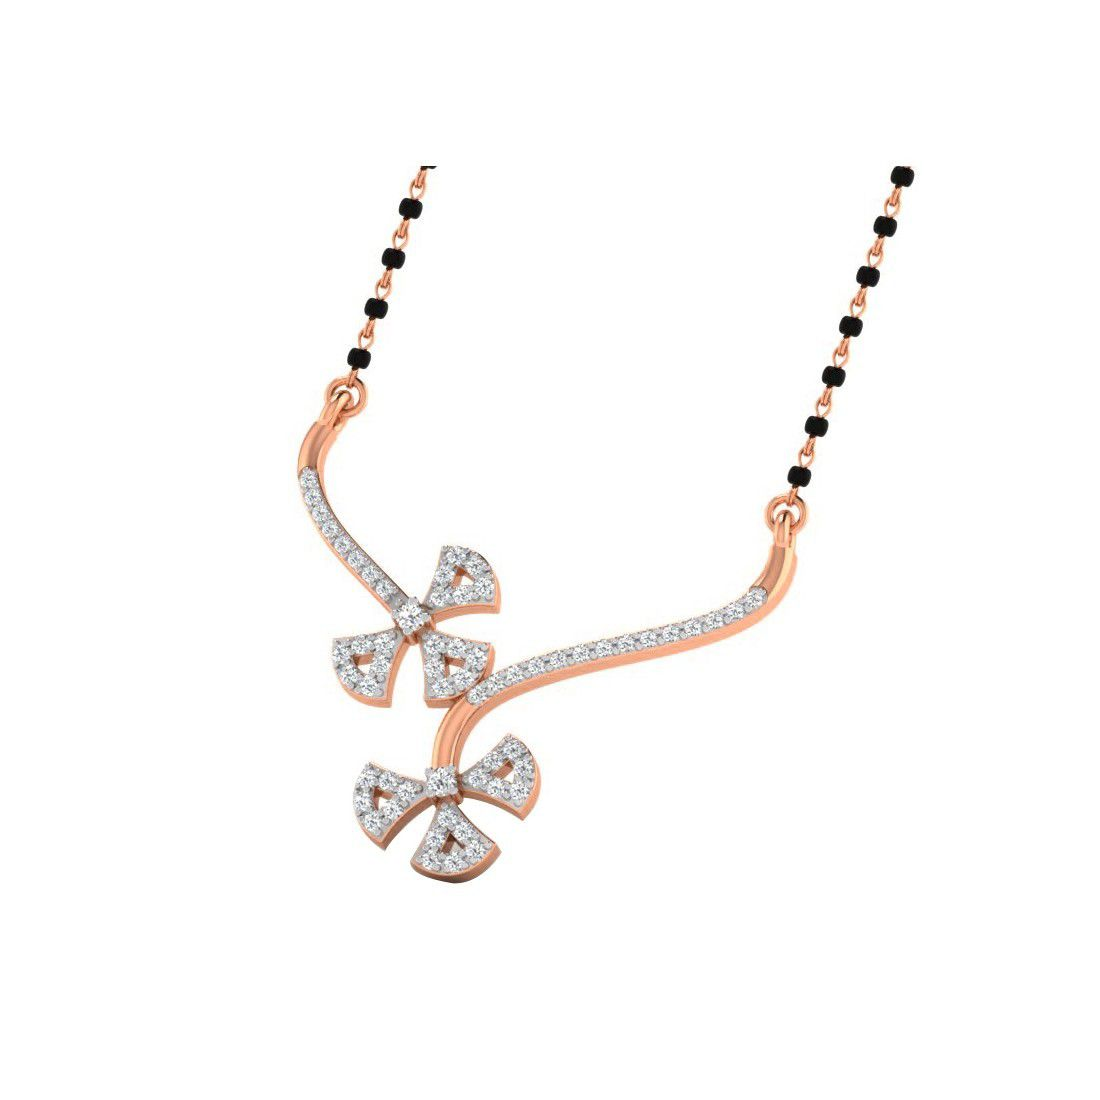 His & Her 18k Rose Gold Mangalsutra